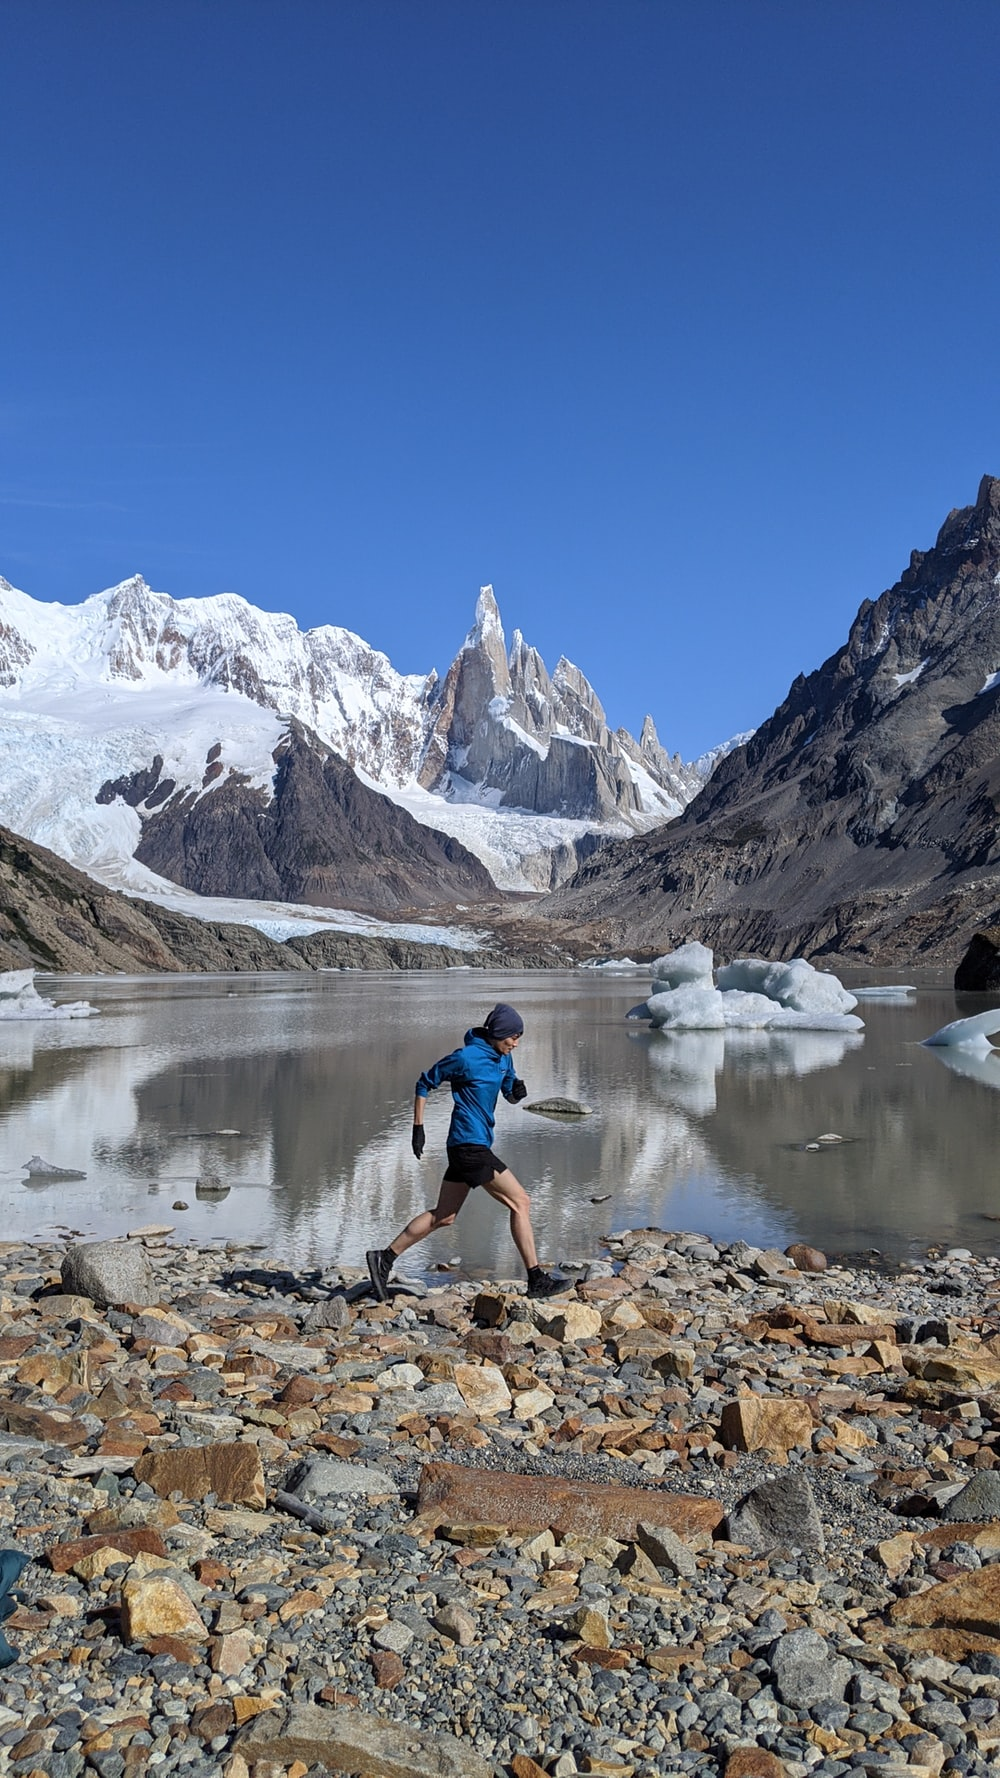 man in blue shirt and black shorts standing on rocky shore near snow covered mountain during